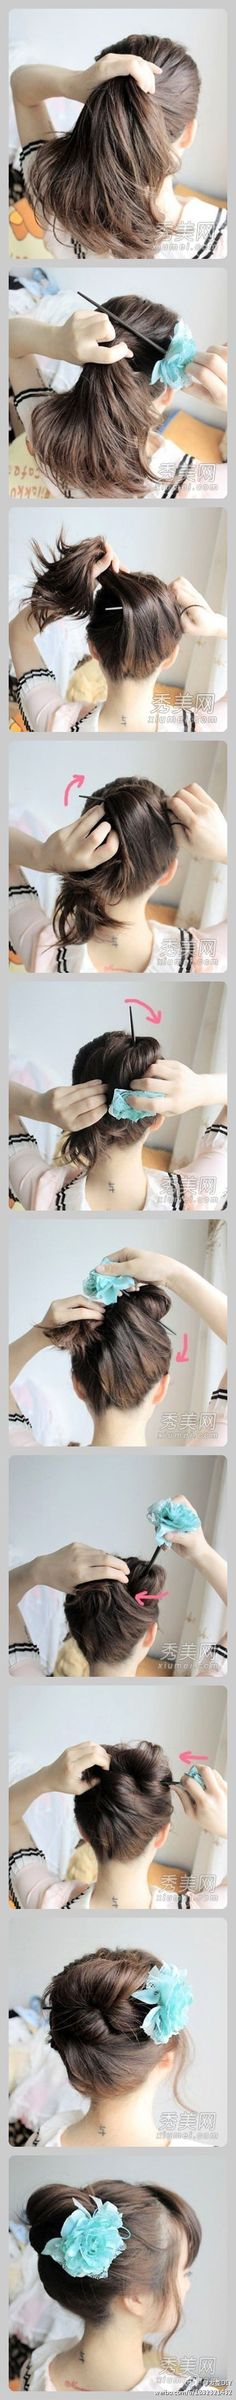 Flower bun tutorial